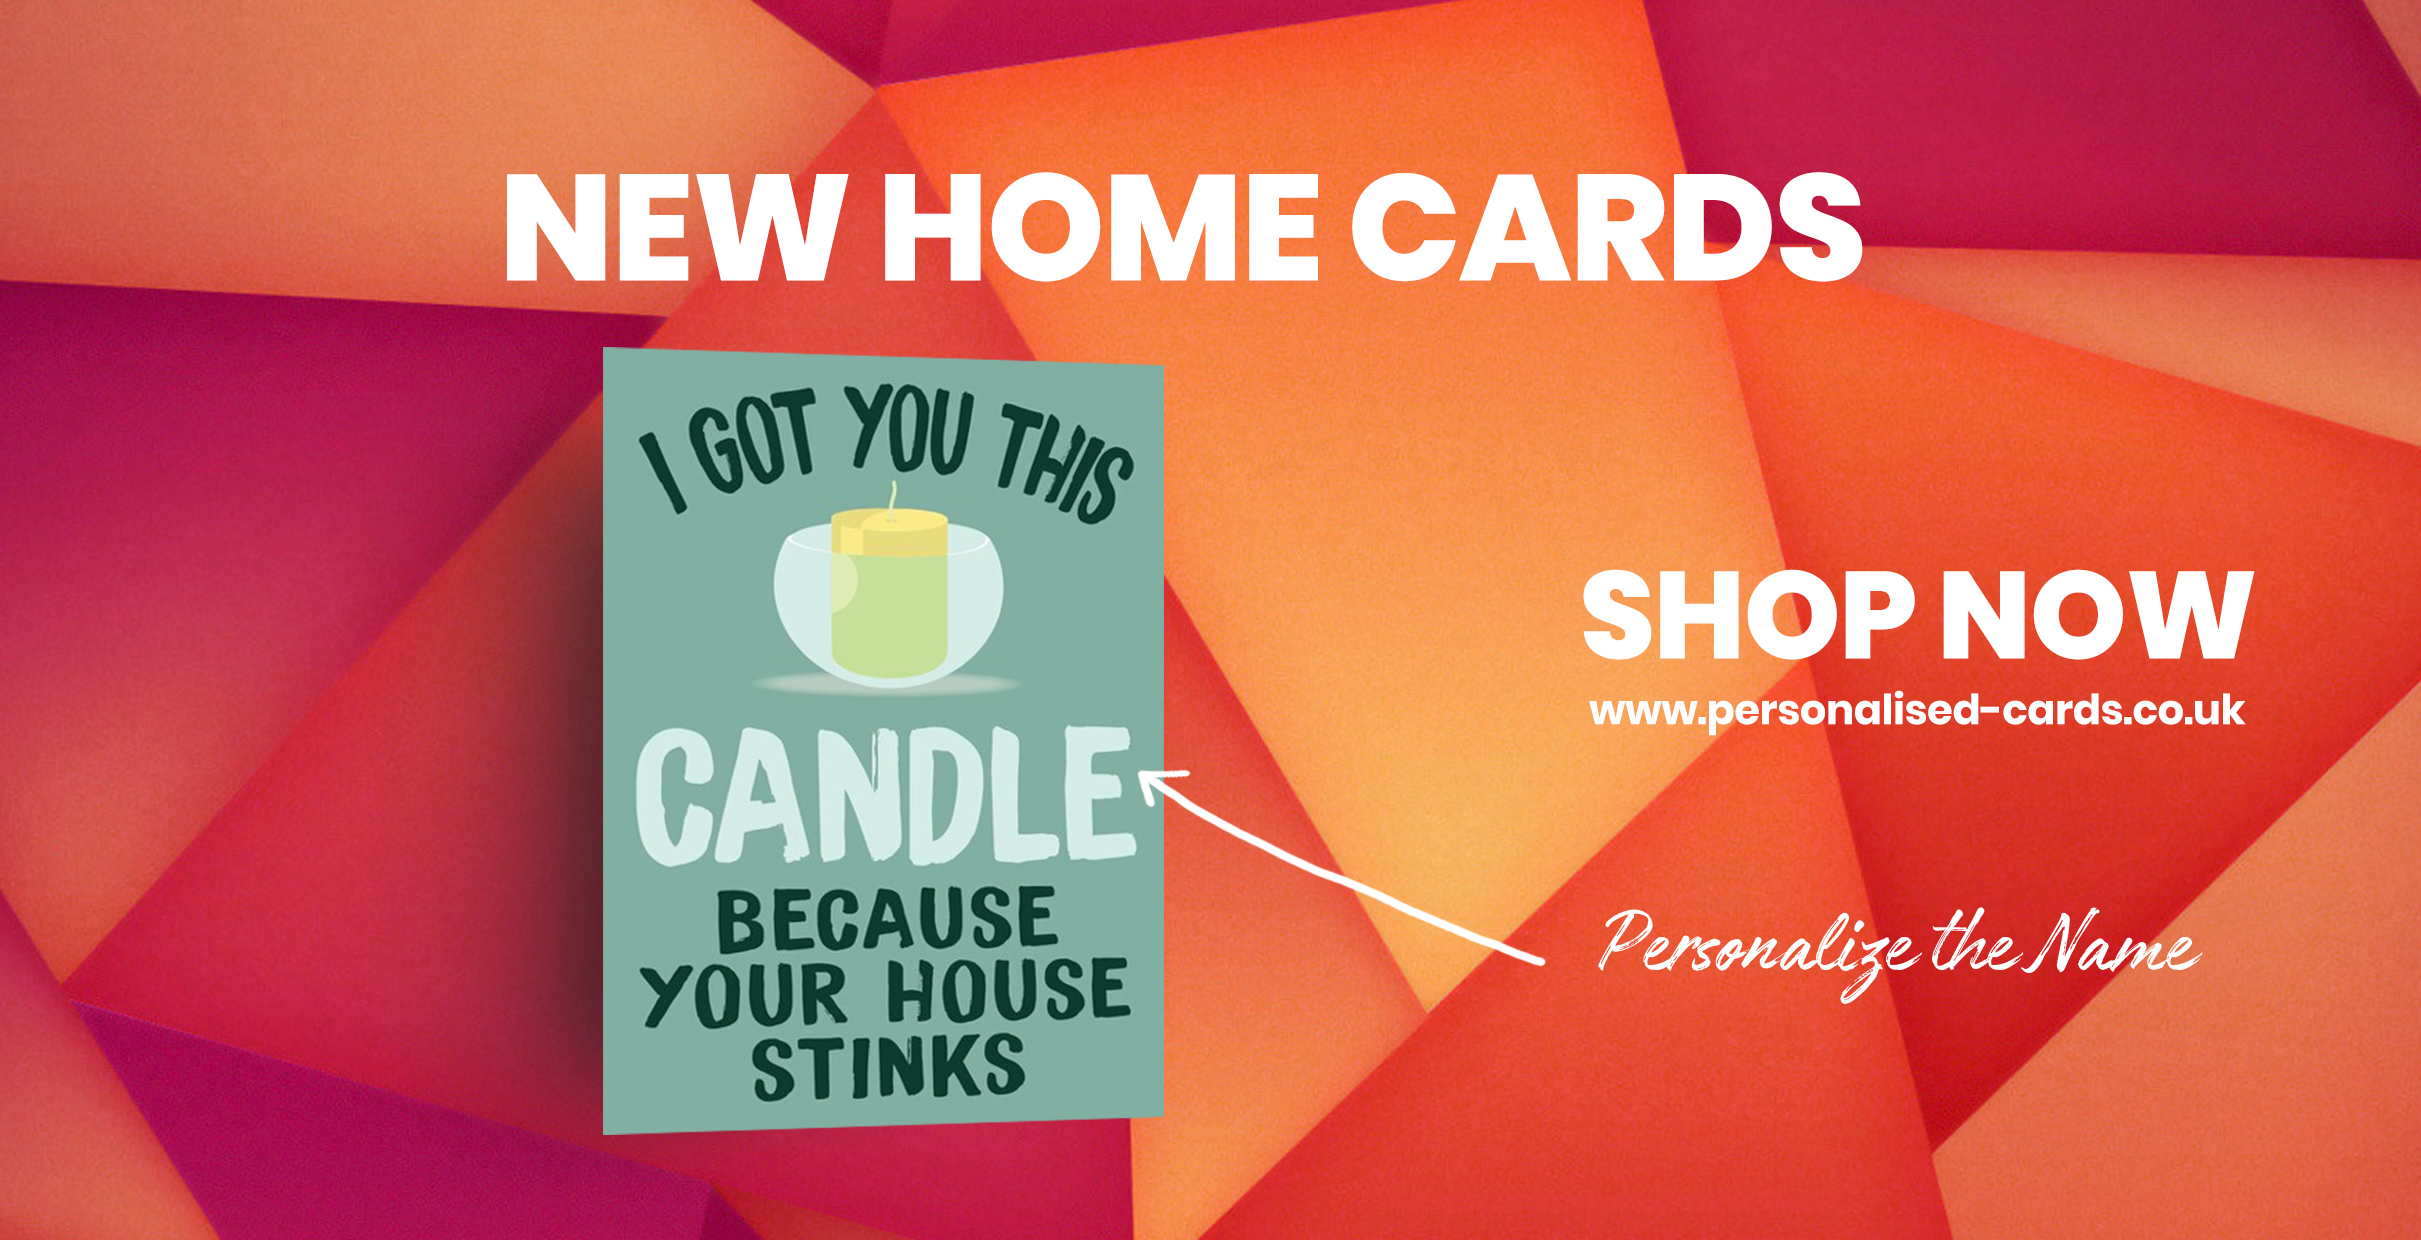 new-home-cards.jpg